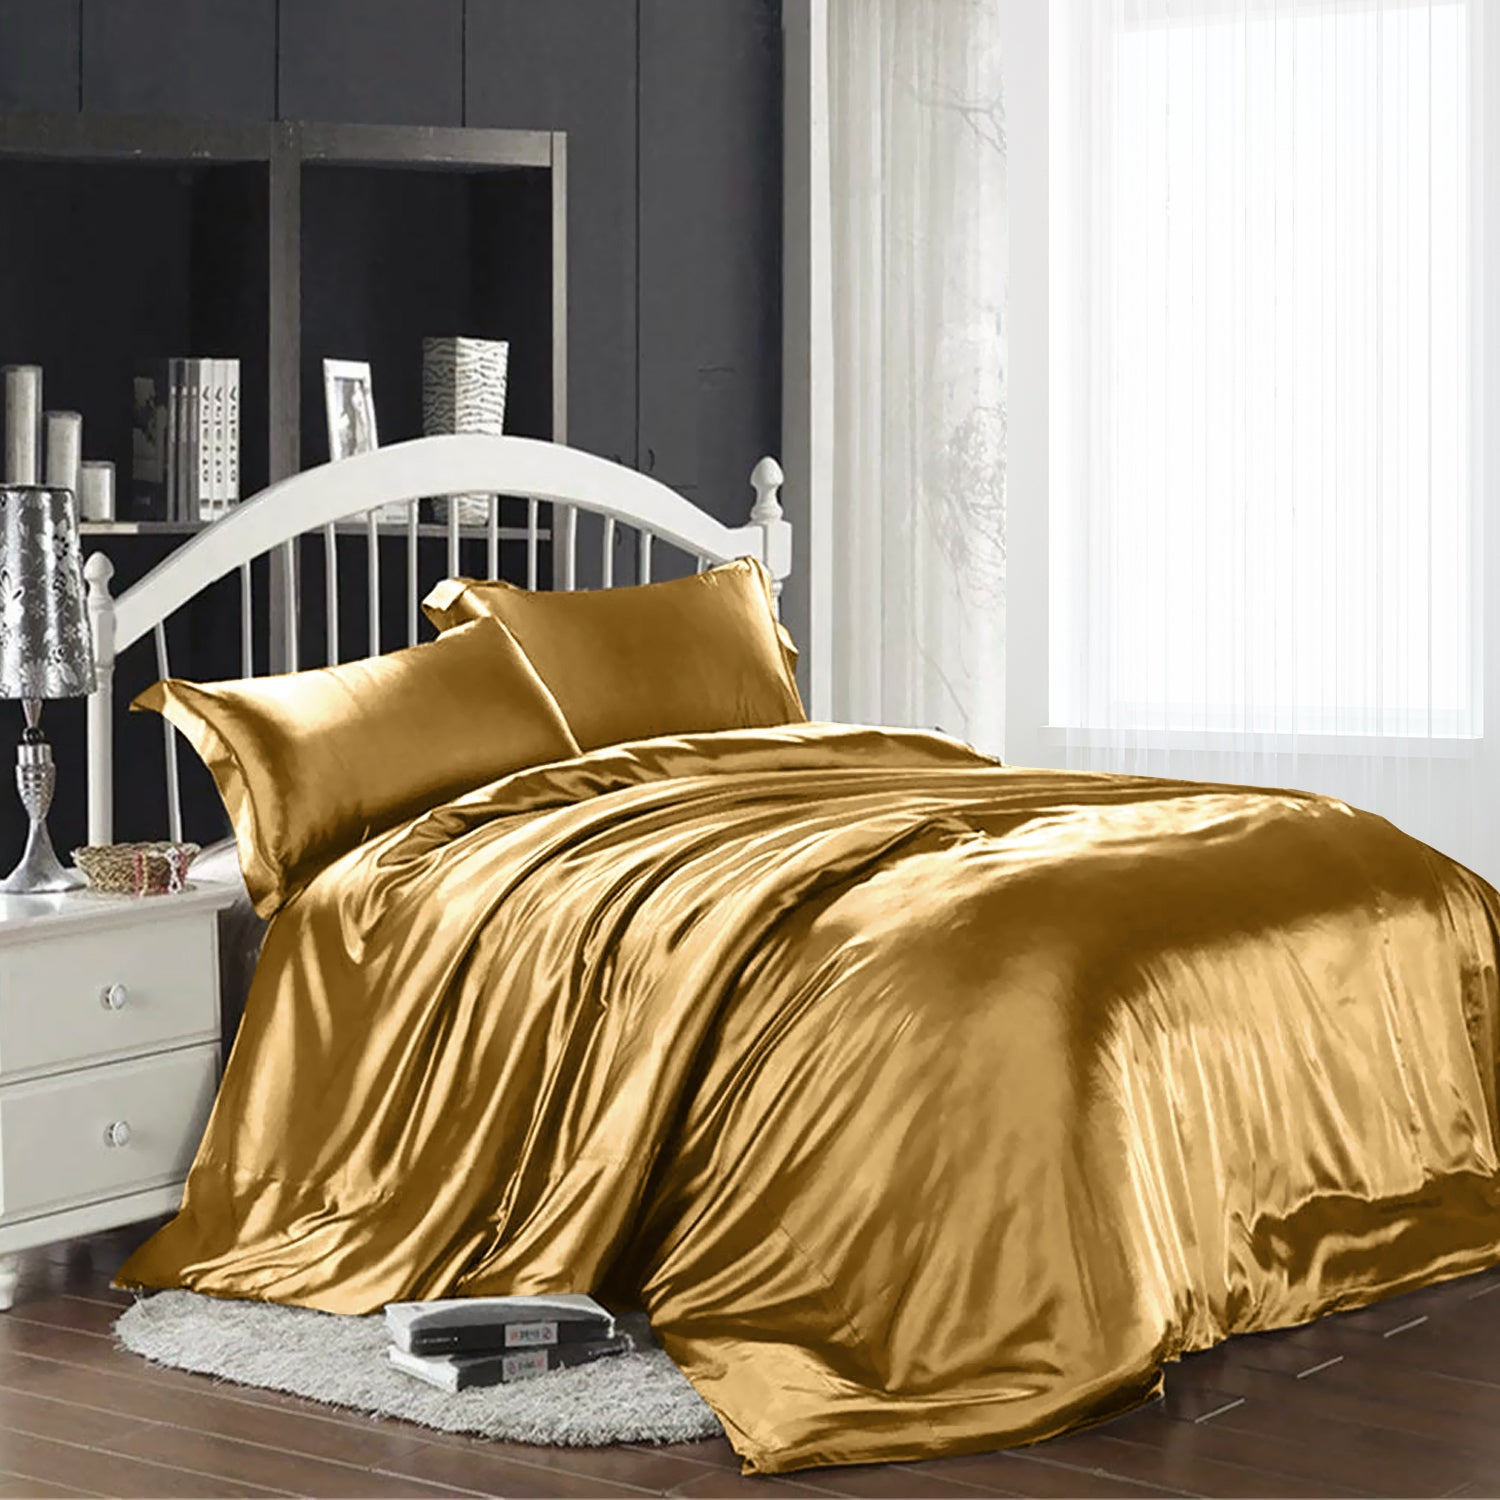 1000tc Silk Satin S Double Queen King Size Bed Quilt Duvet